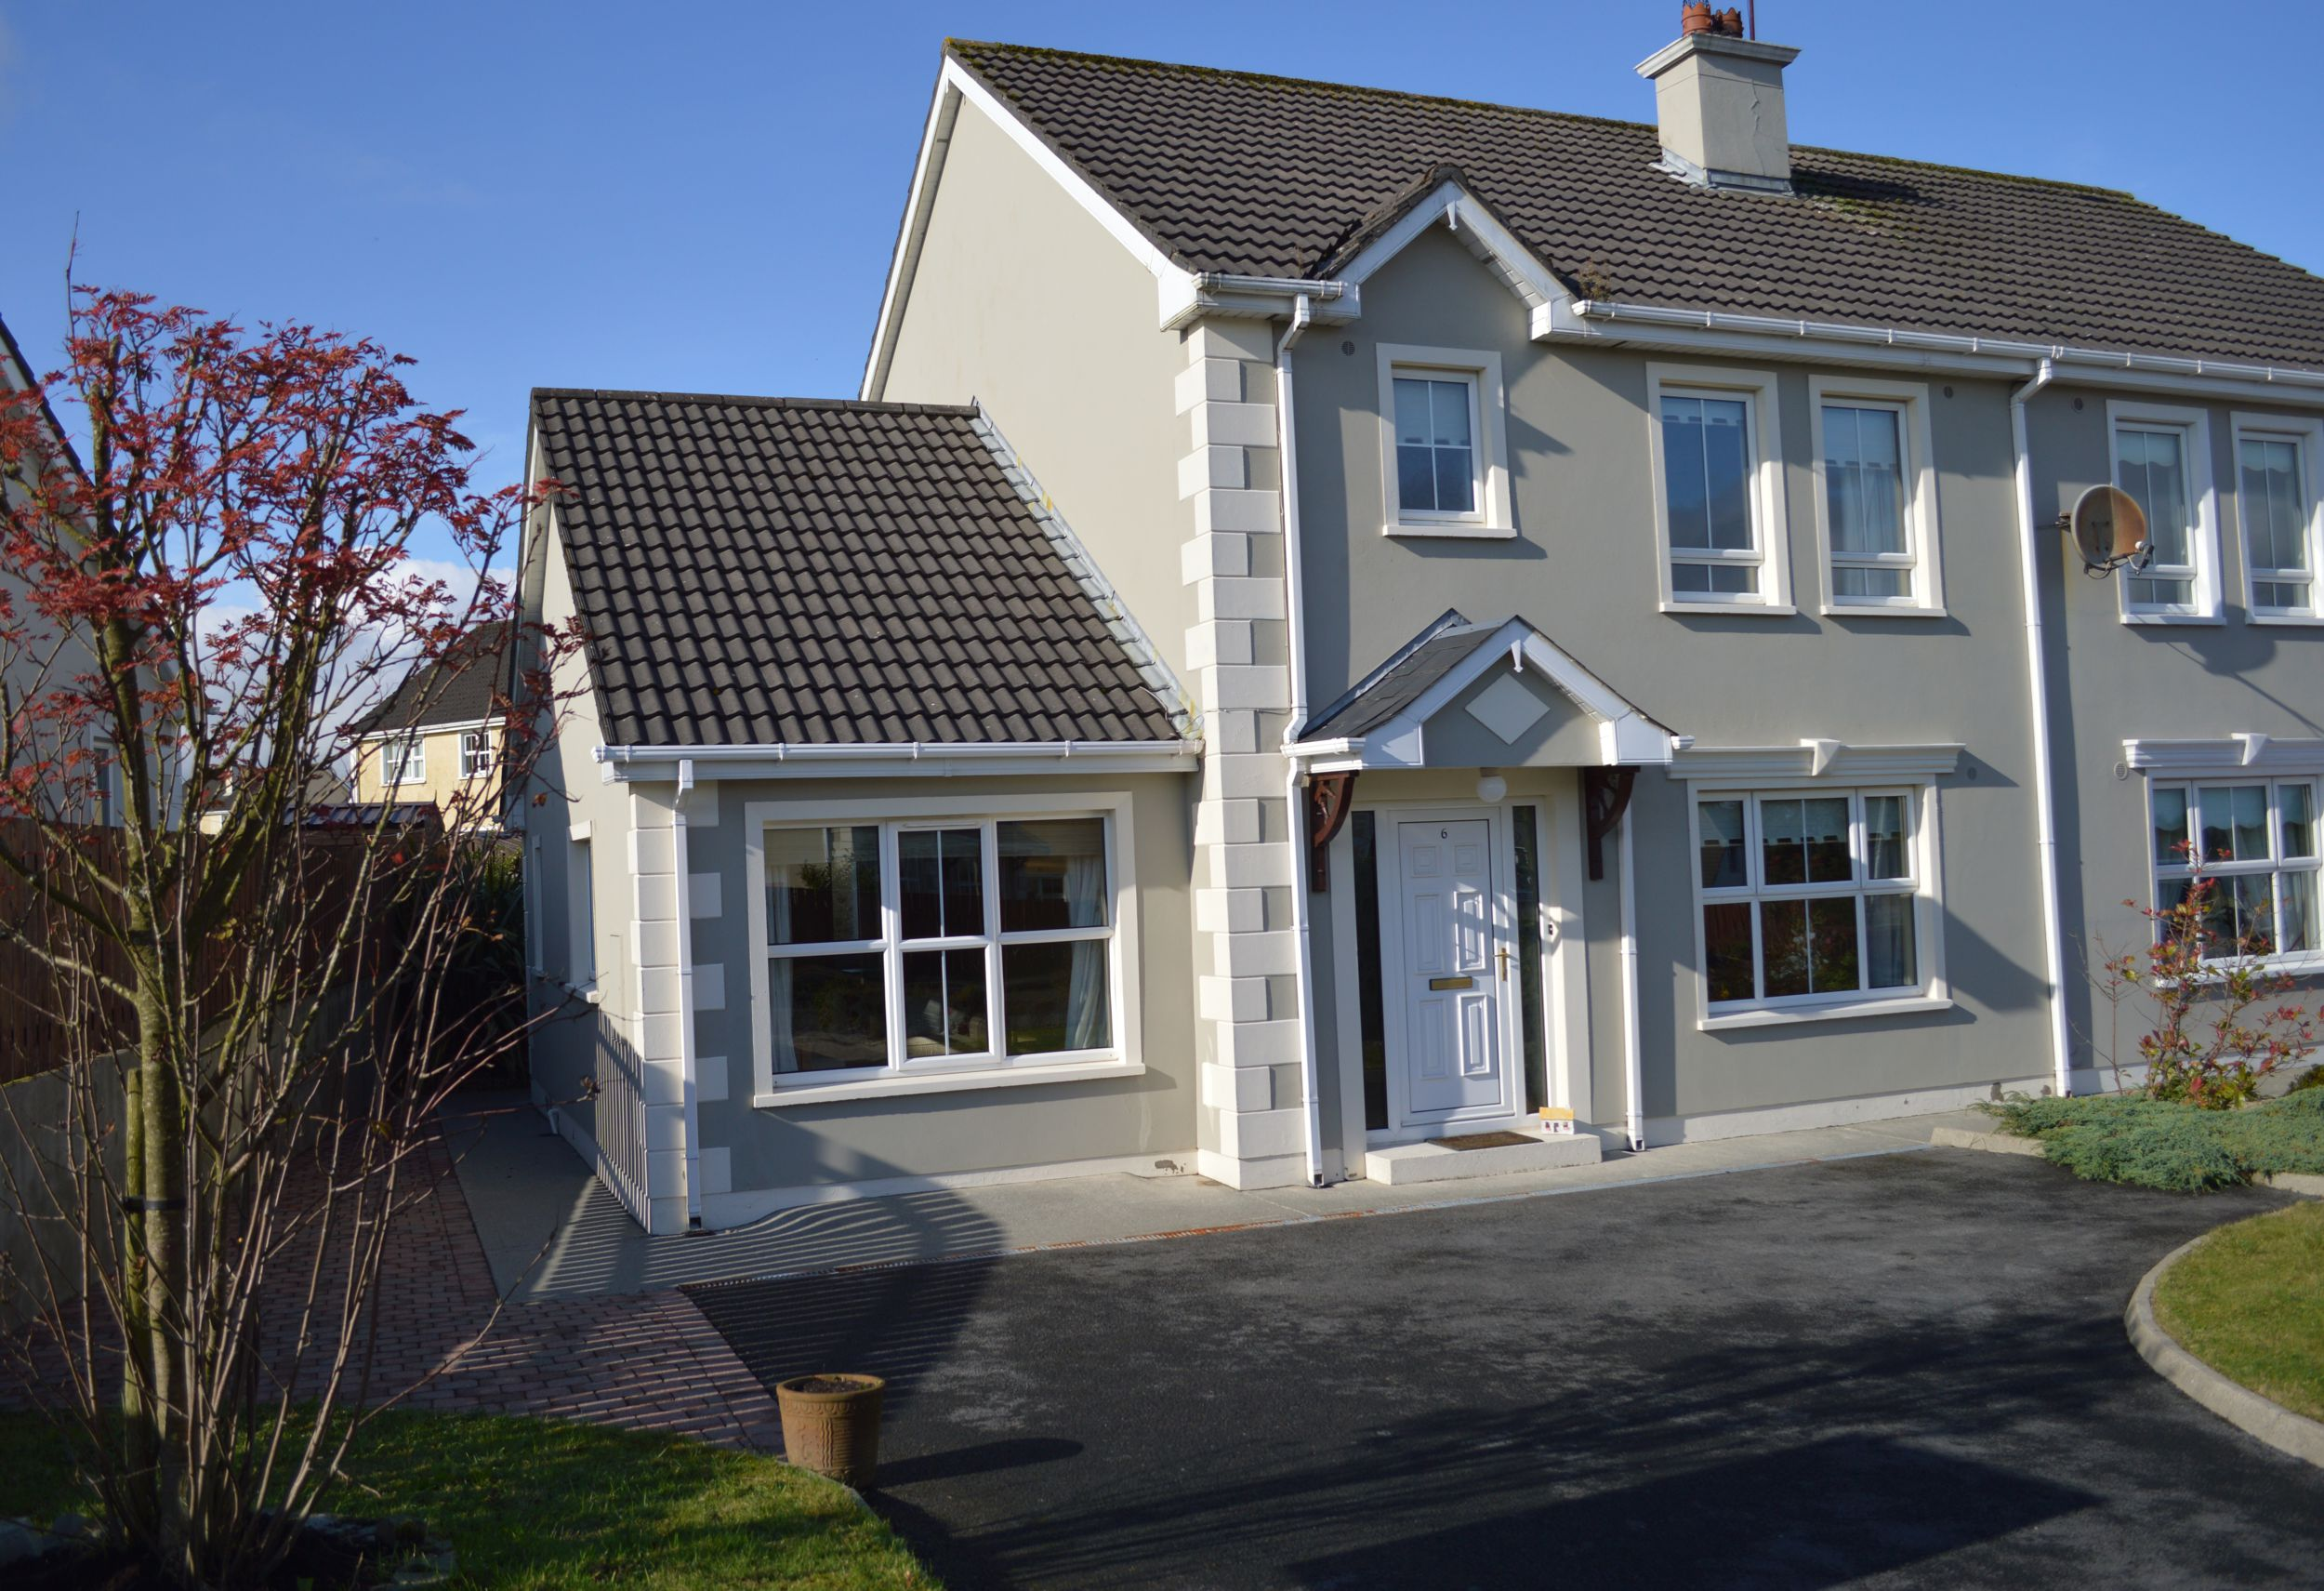 No 6 GlenPark Letterkenny, Co Donegal F92 N6P9